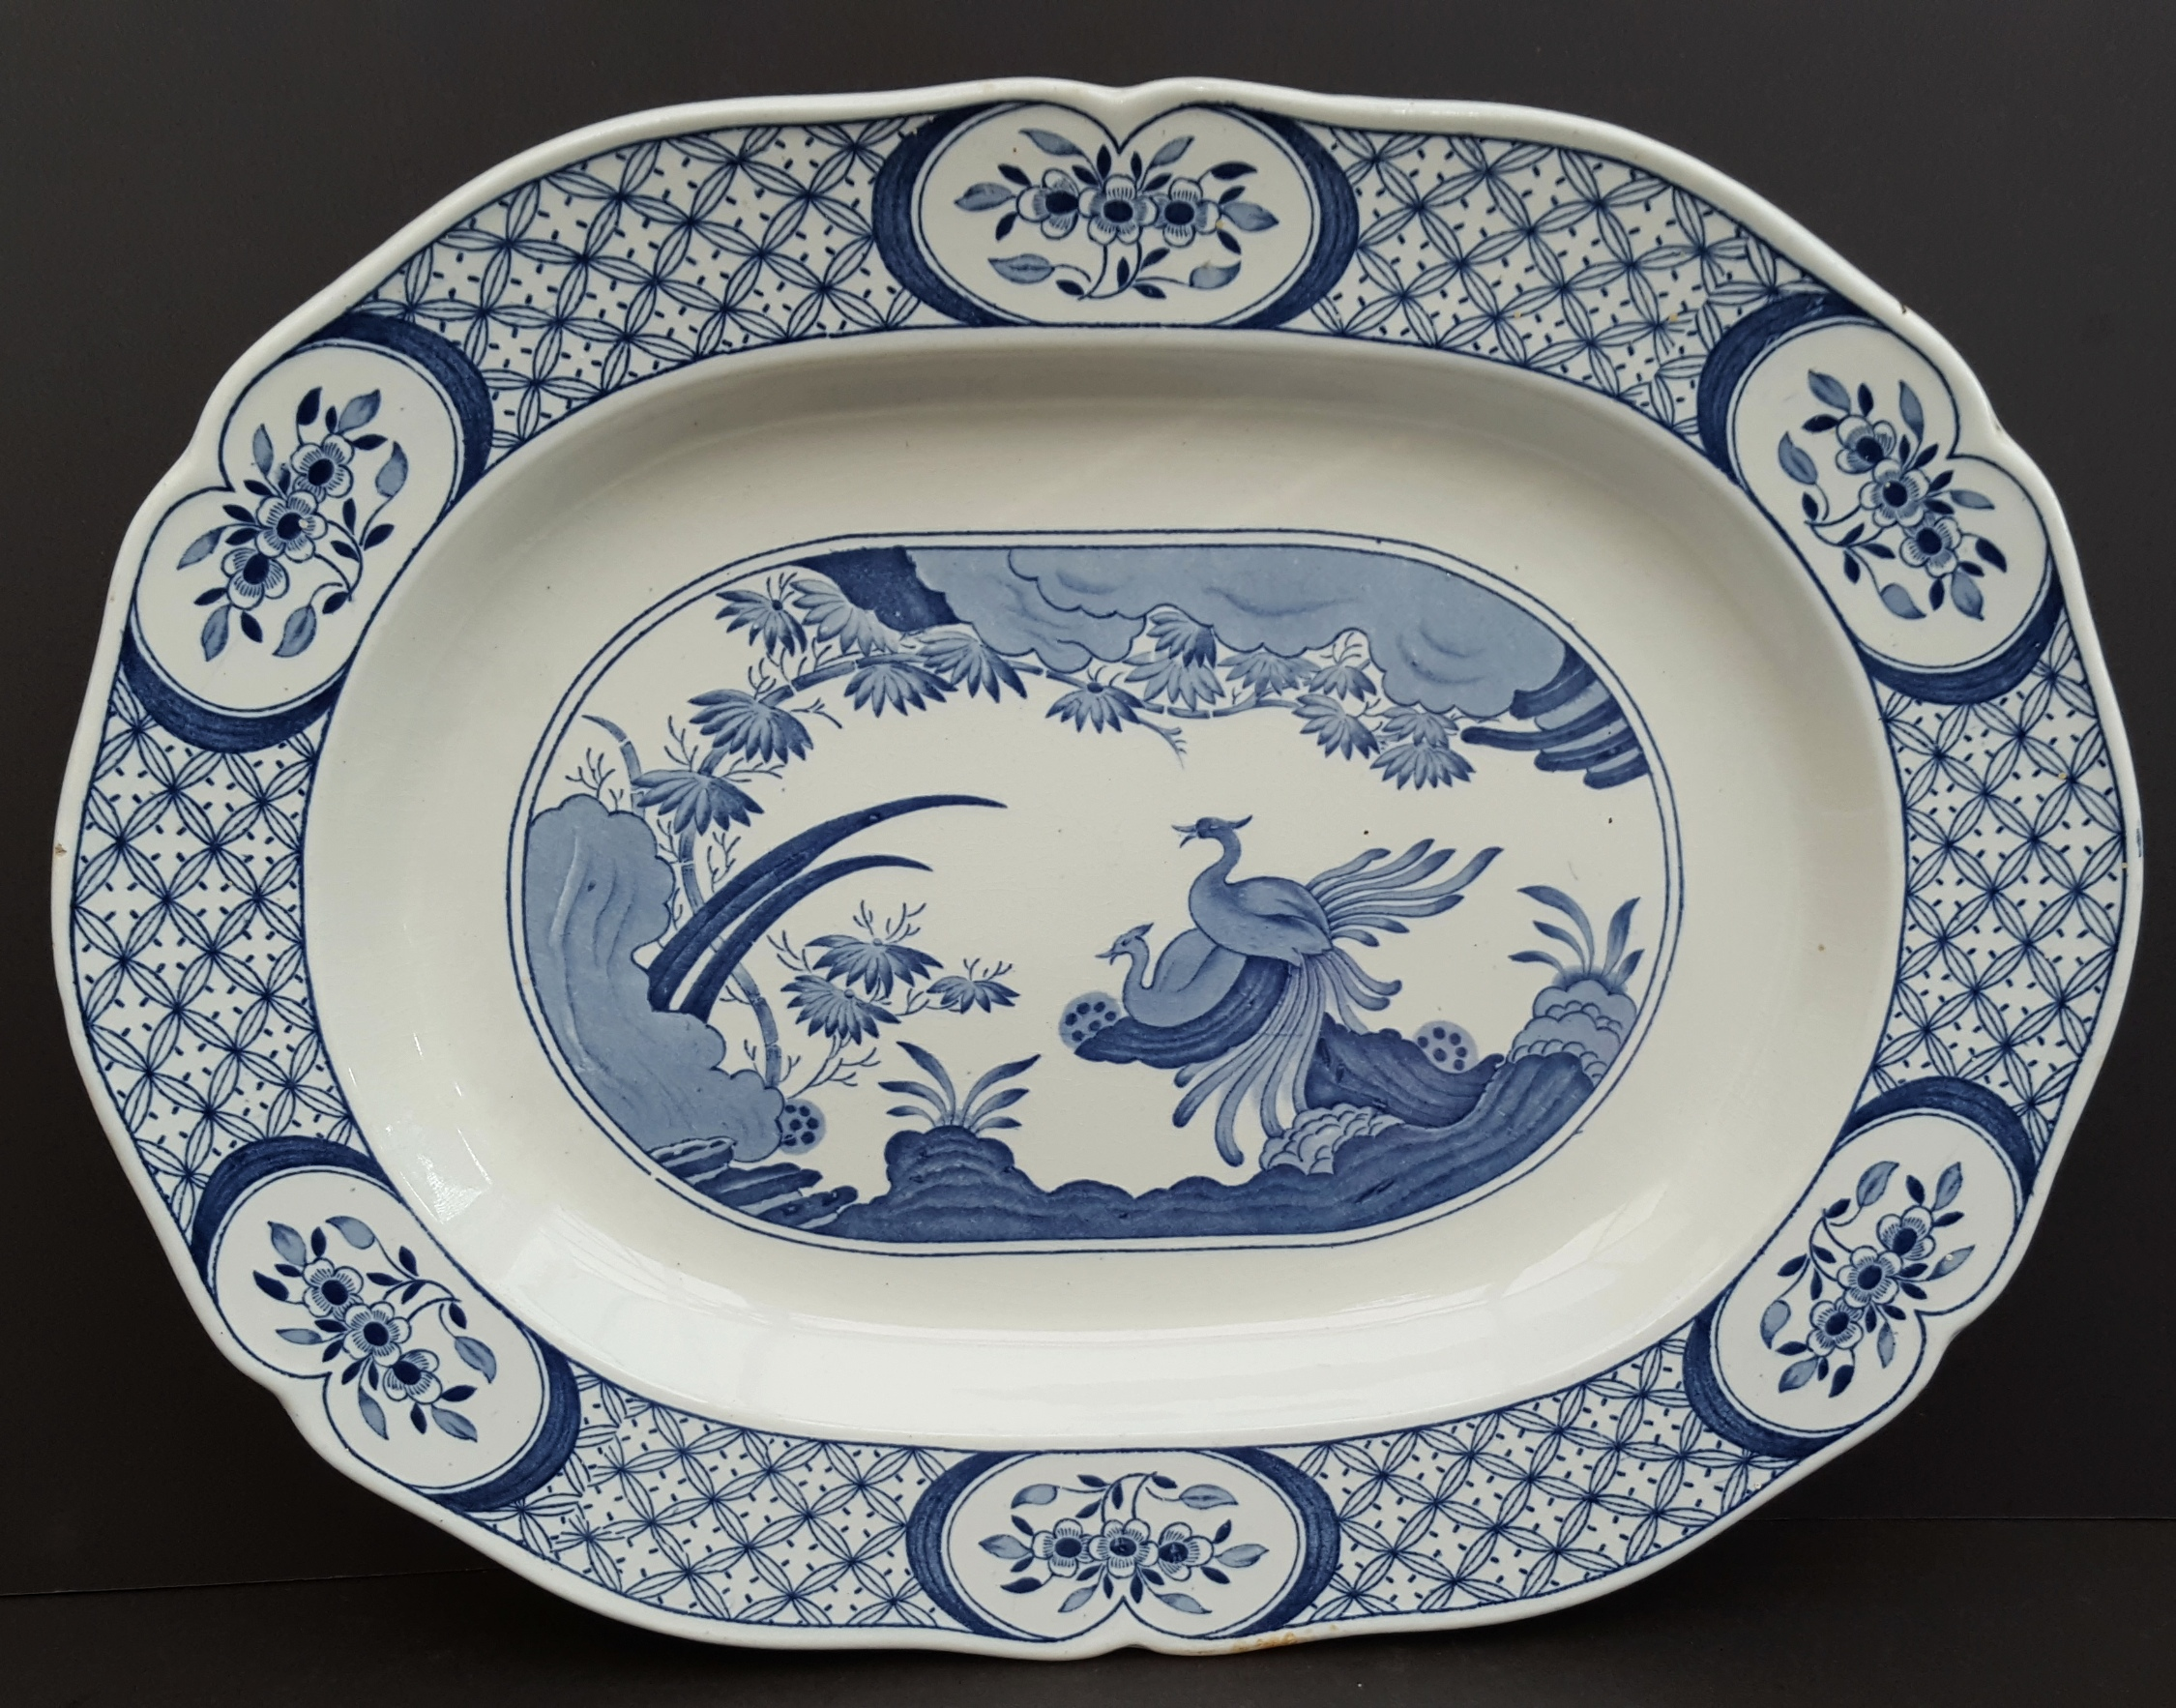 Lot 99 - Collection of Blue & White Furnivals Ltd Old Chelsea China Total Of 7 Pieces Reg No c1913